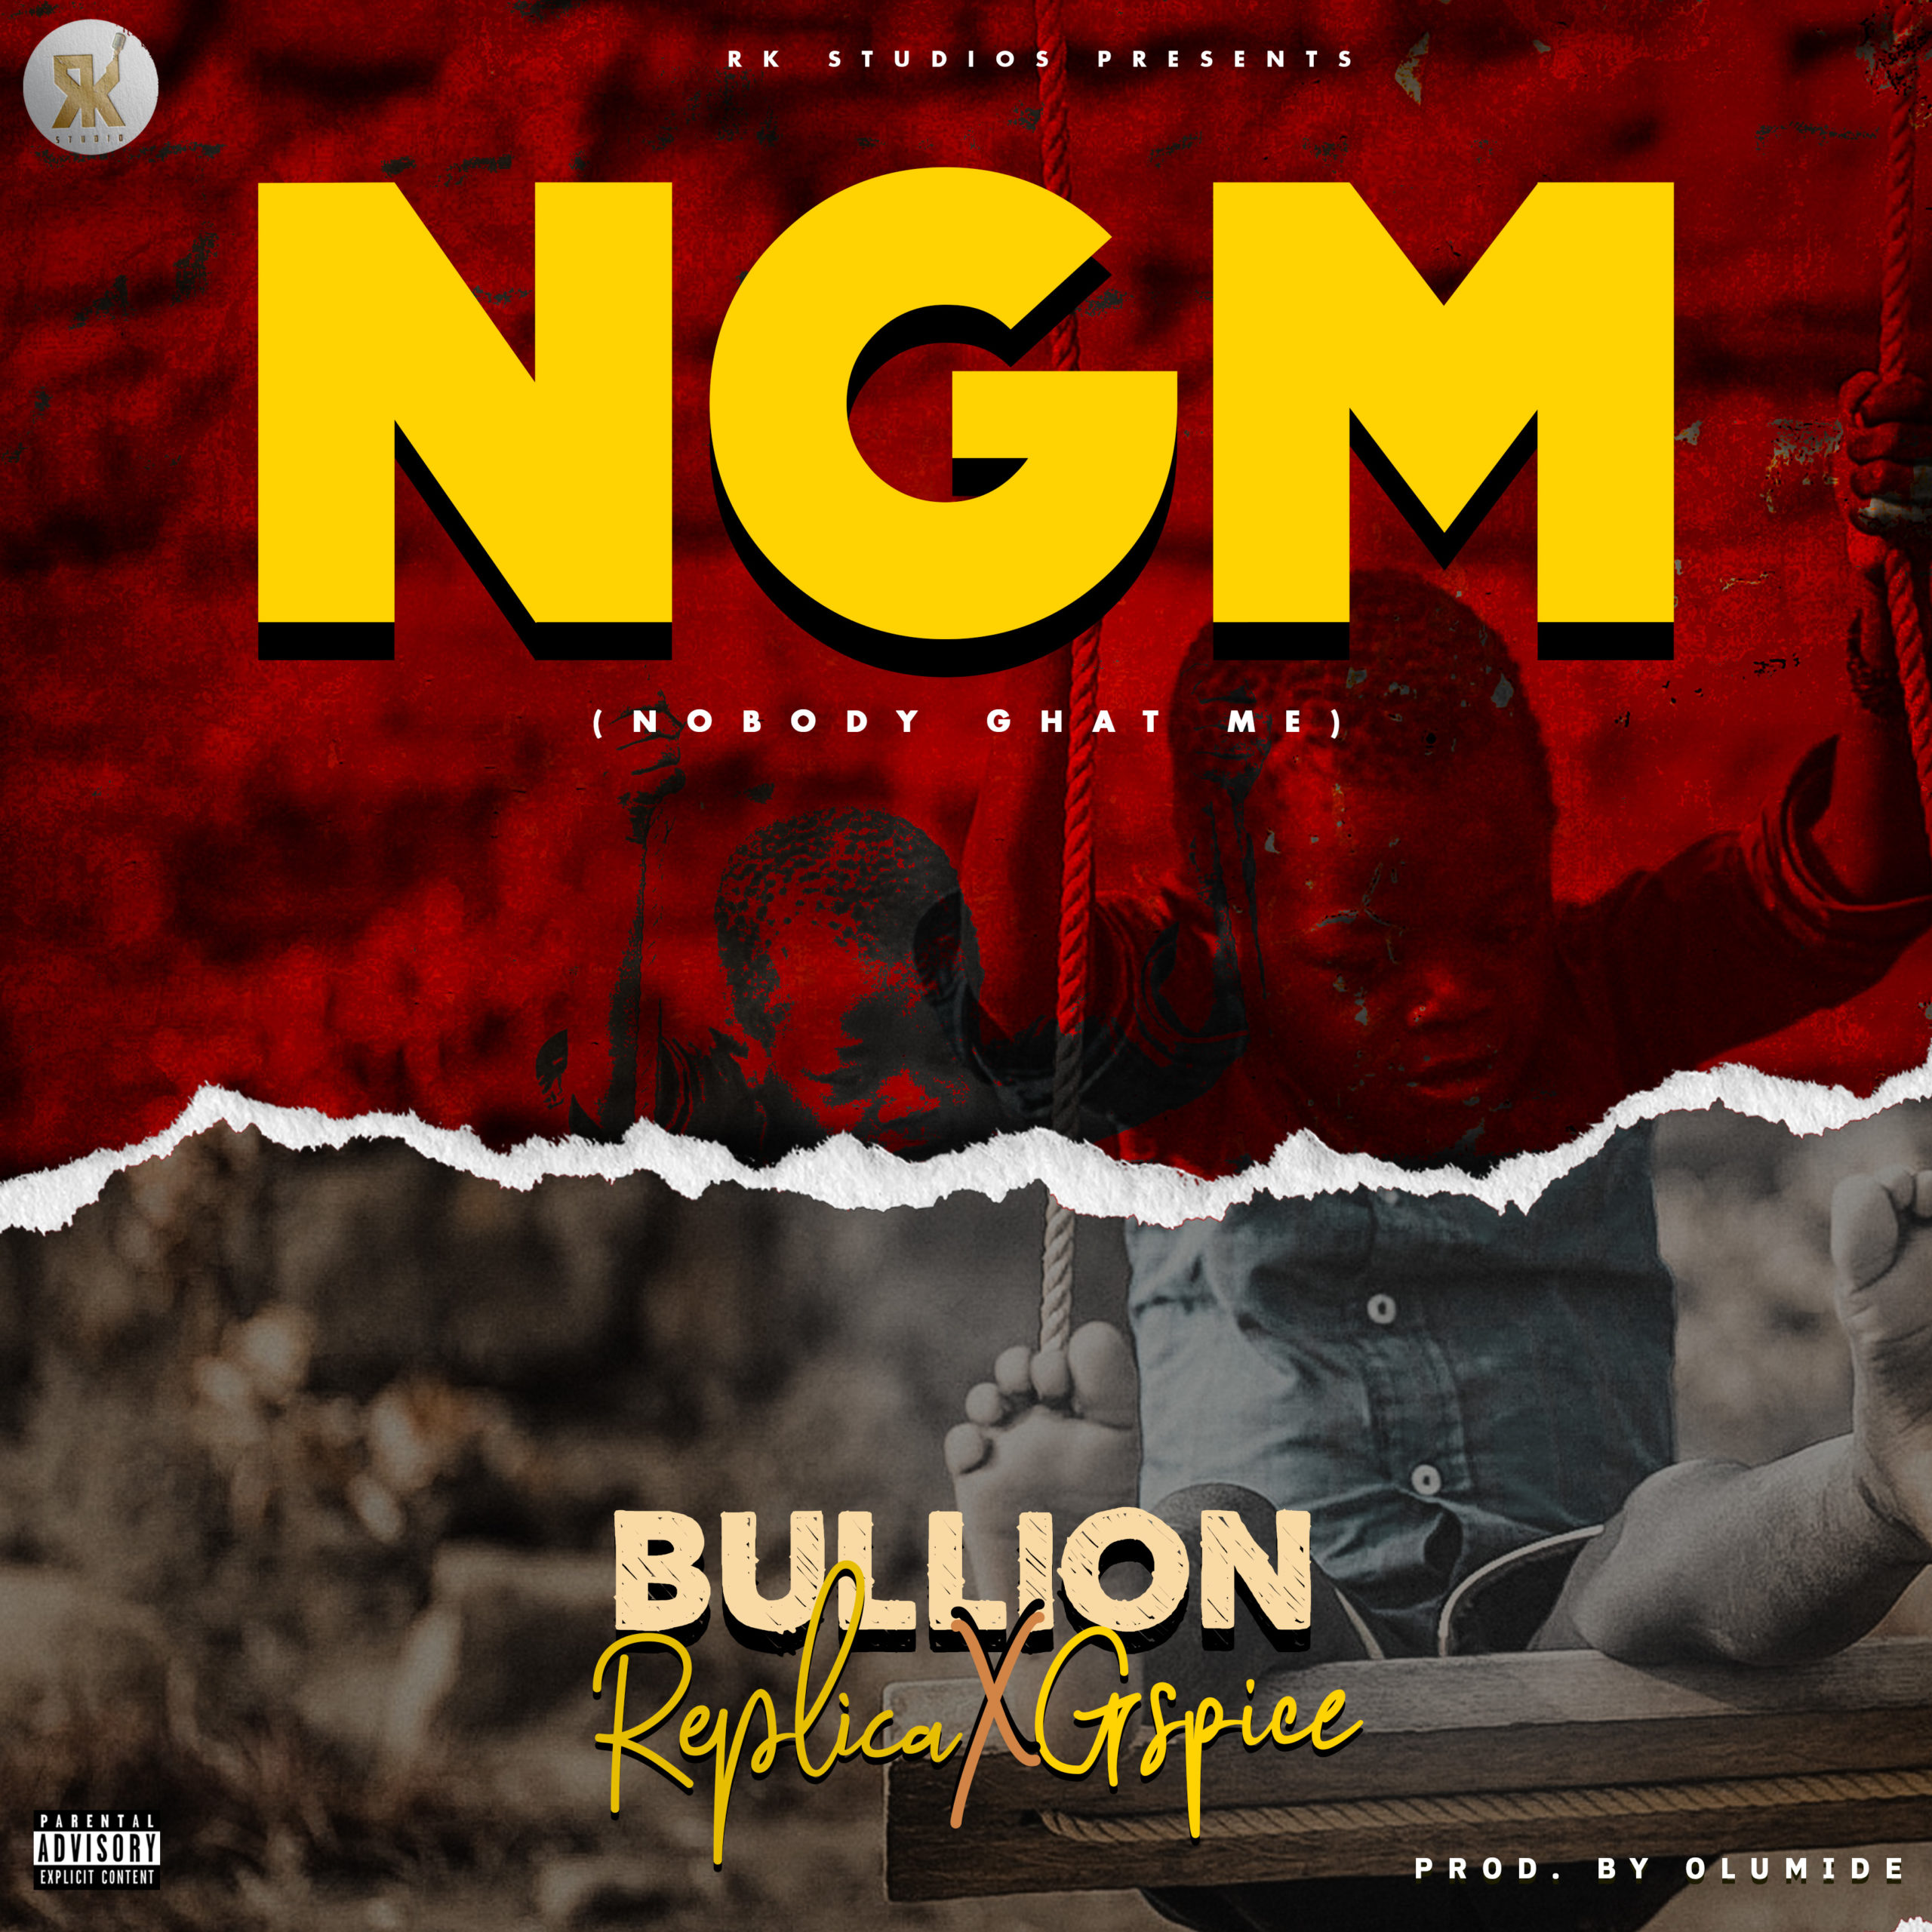 Bullion Ft. Replica & Gspice – NGM (No Body Ghat Me)